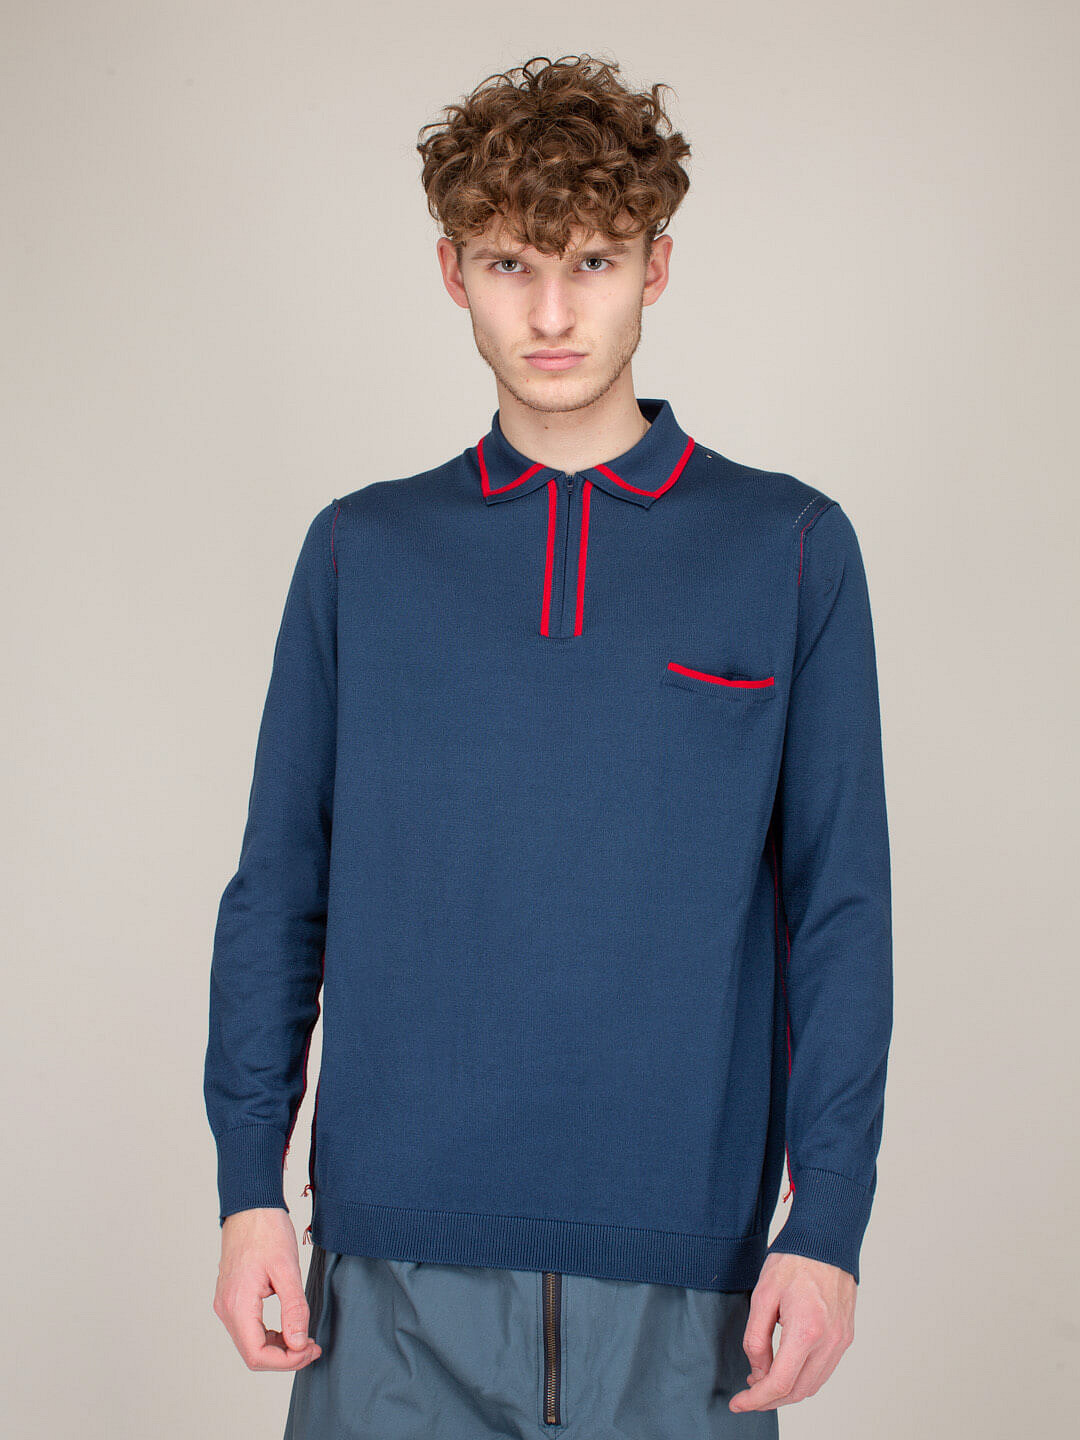 Pullover Shirt blue red